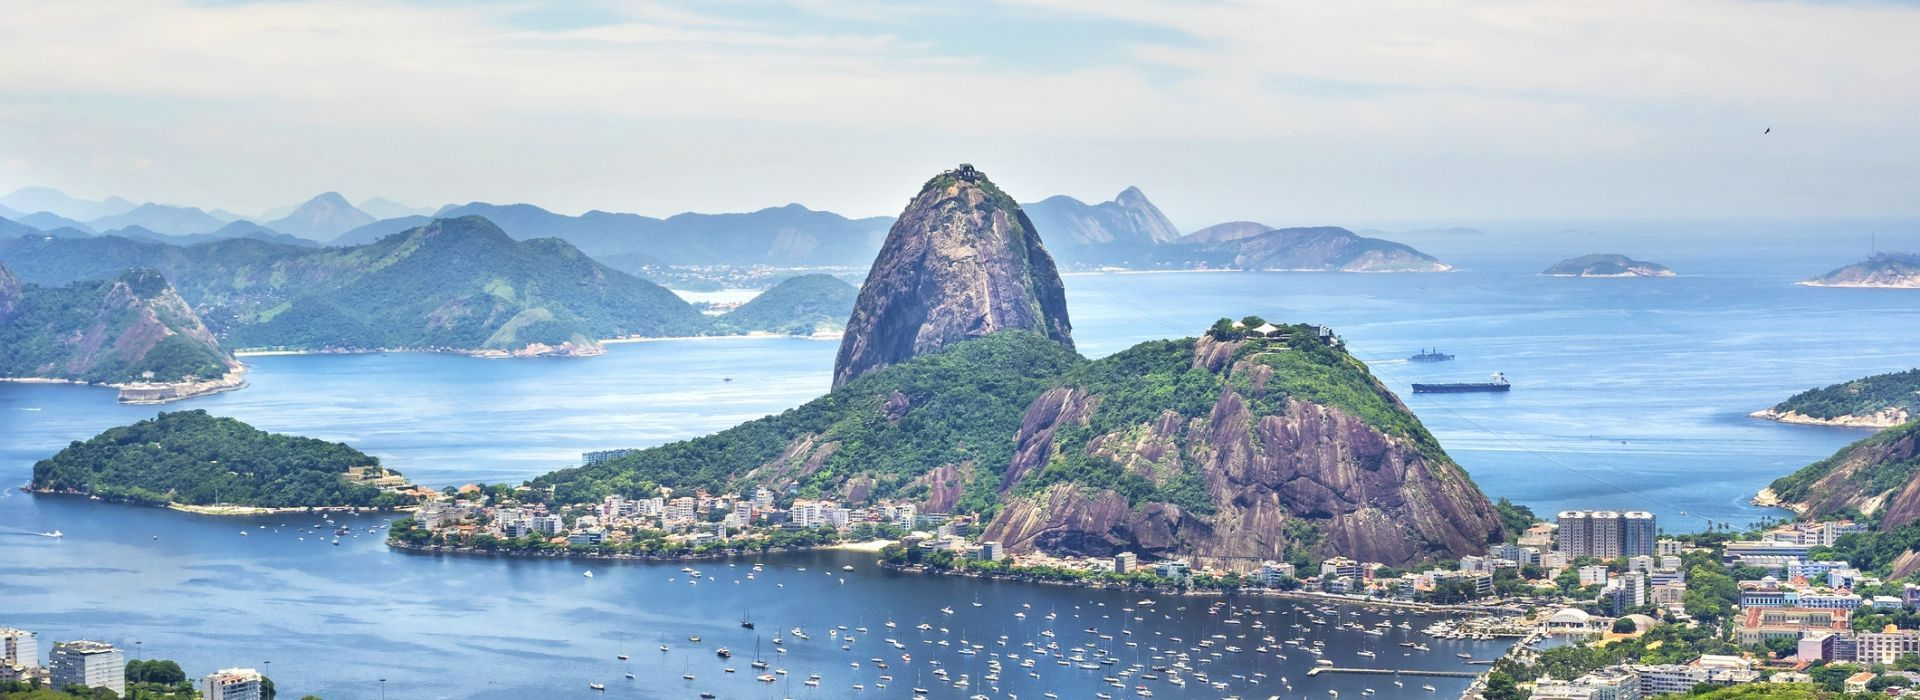 Brazil tours and vacation packages to Brazil